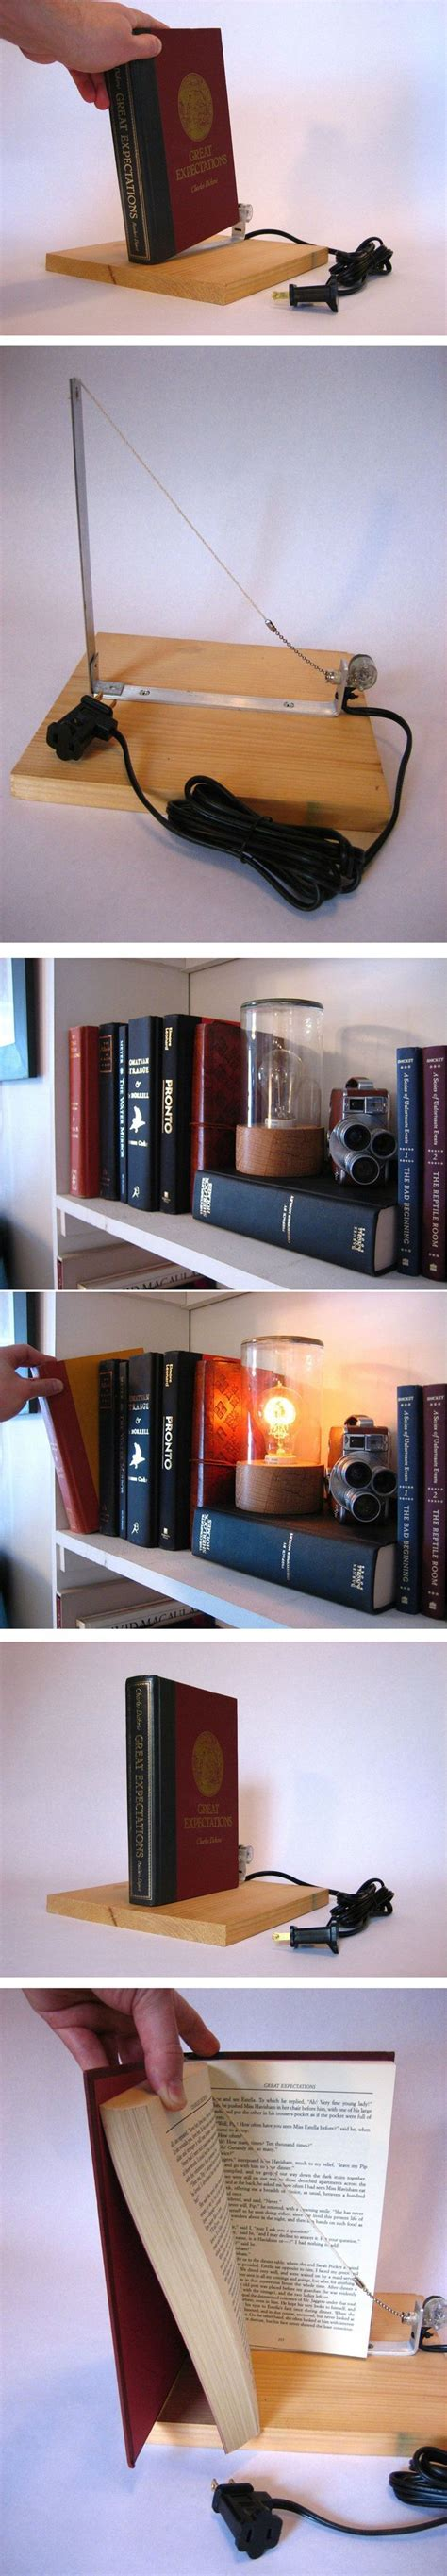 Diy-Conceiled-Bookcase-Lighting